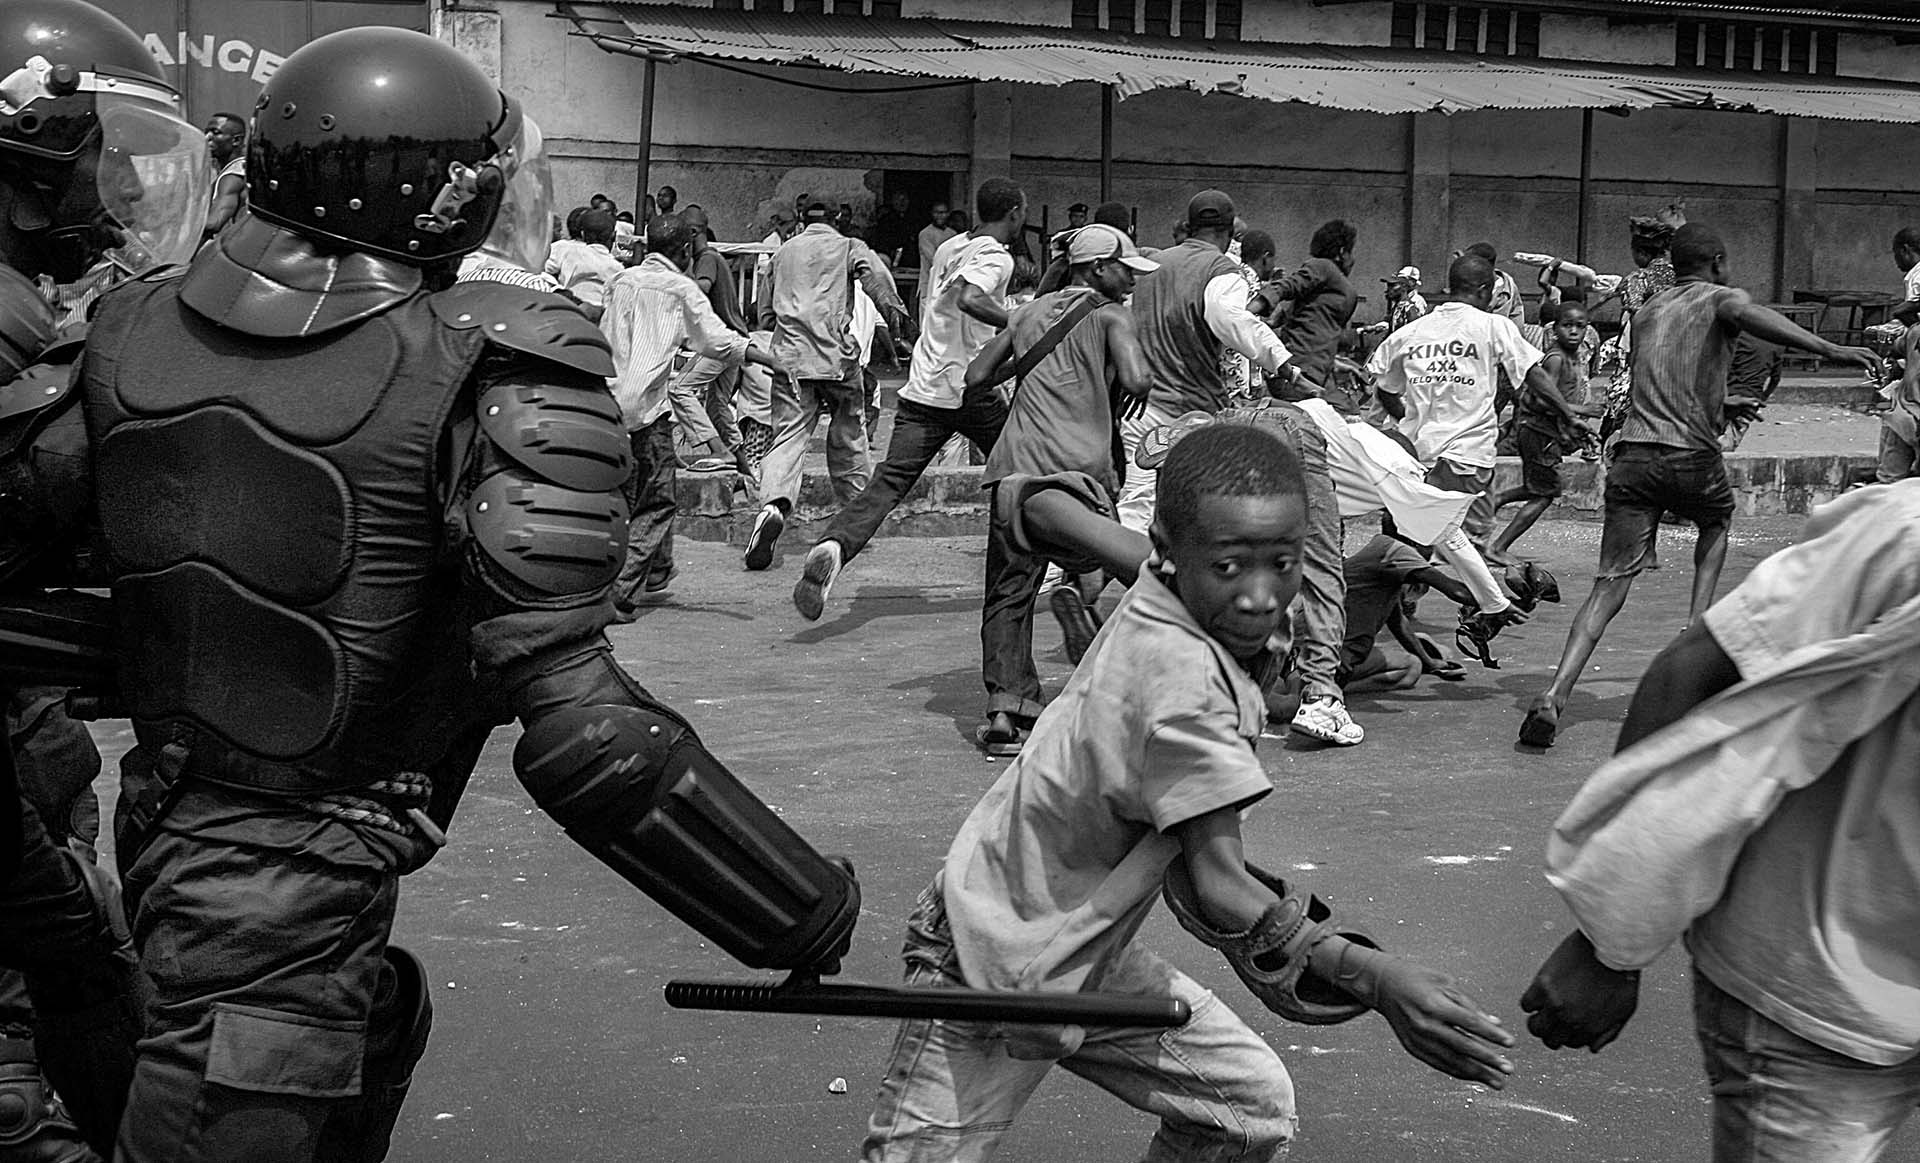 Riot police advance to UDPS protesters in Kinshasa.